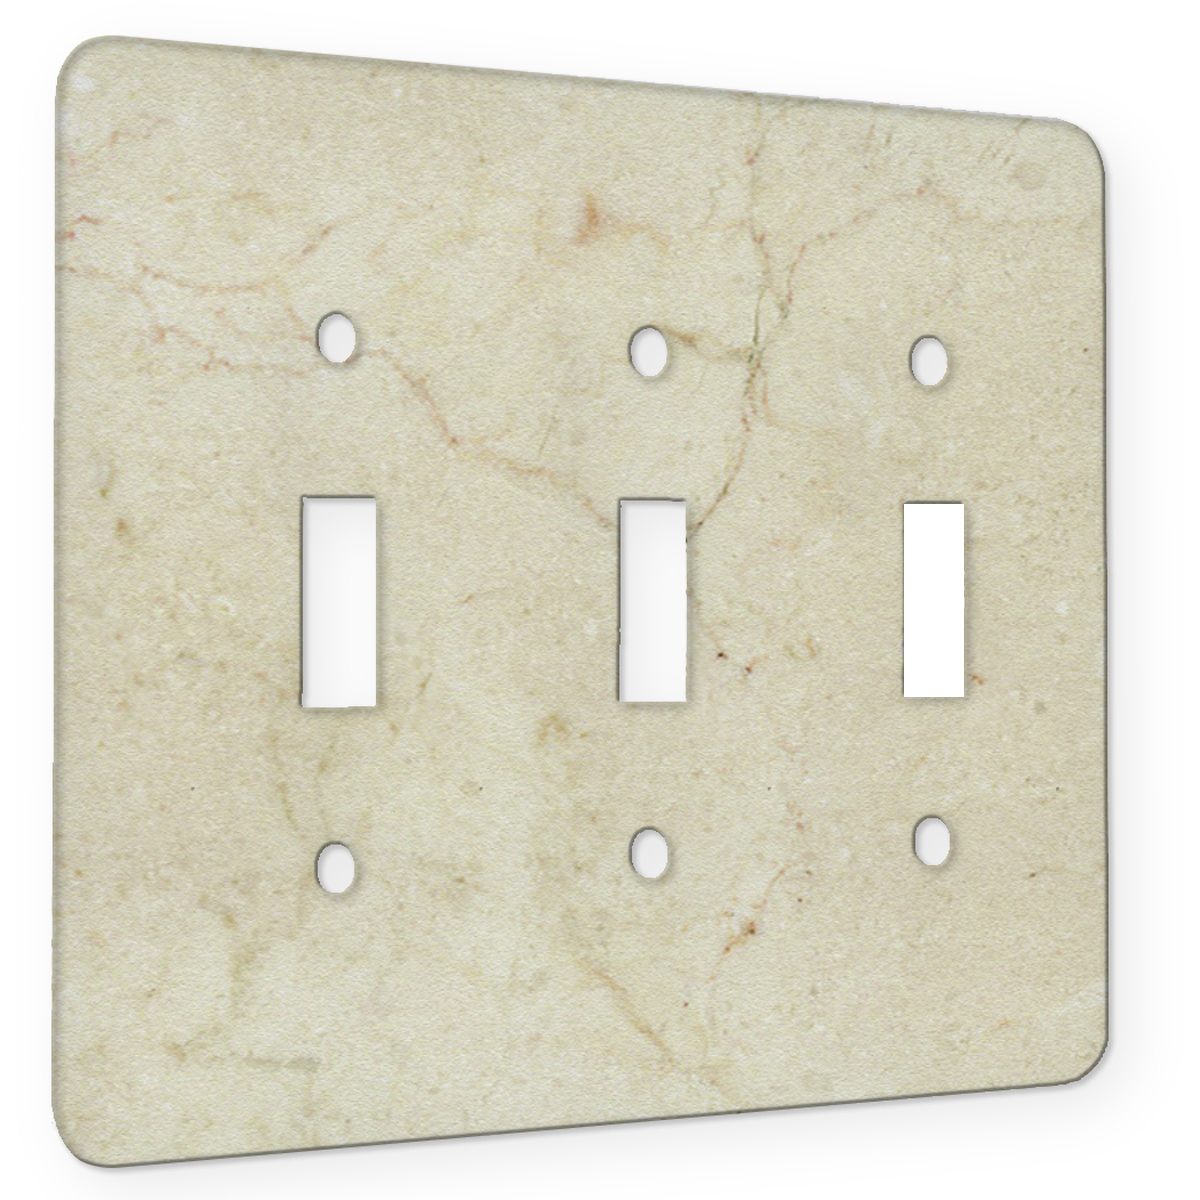 3 Switch Plate Wall Plate Design Ideas